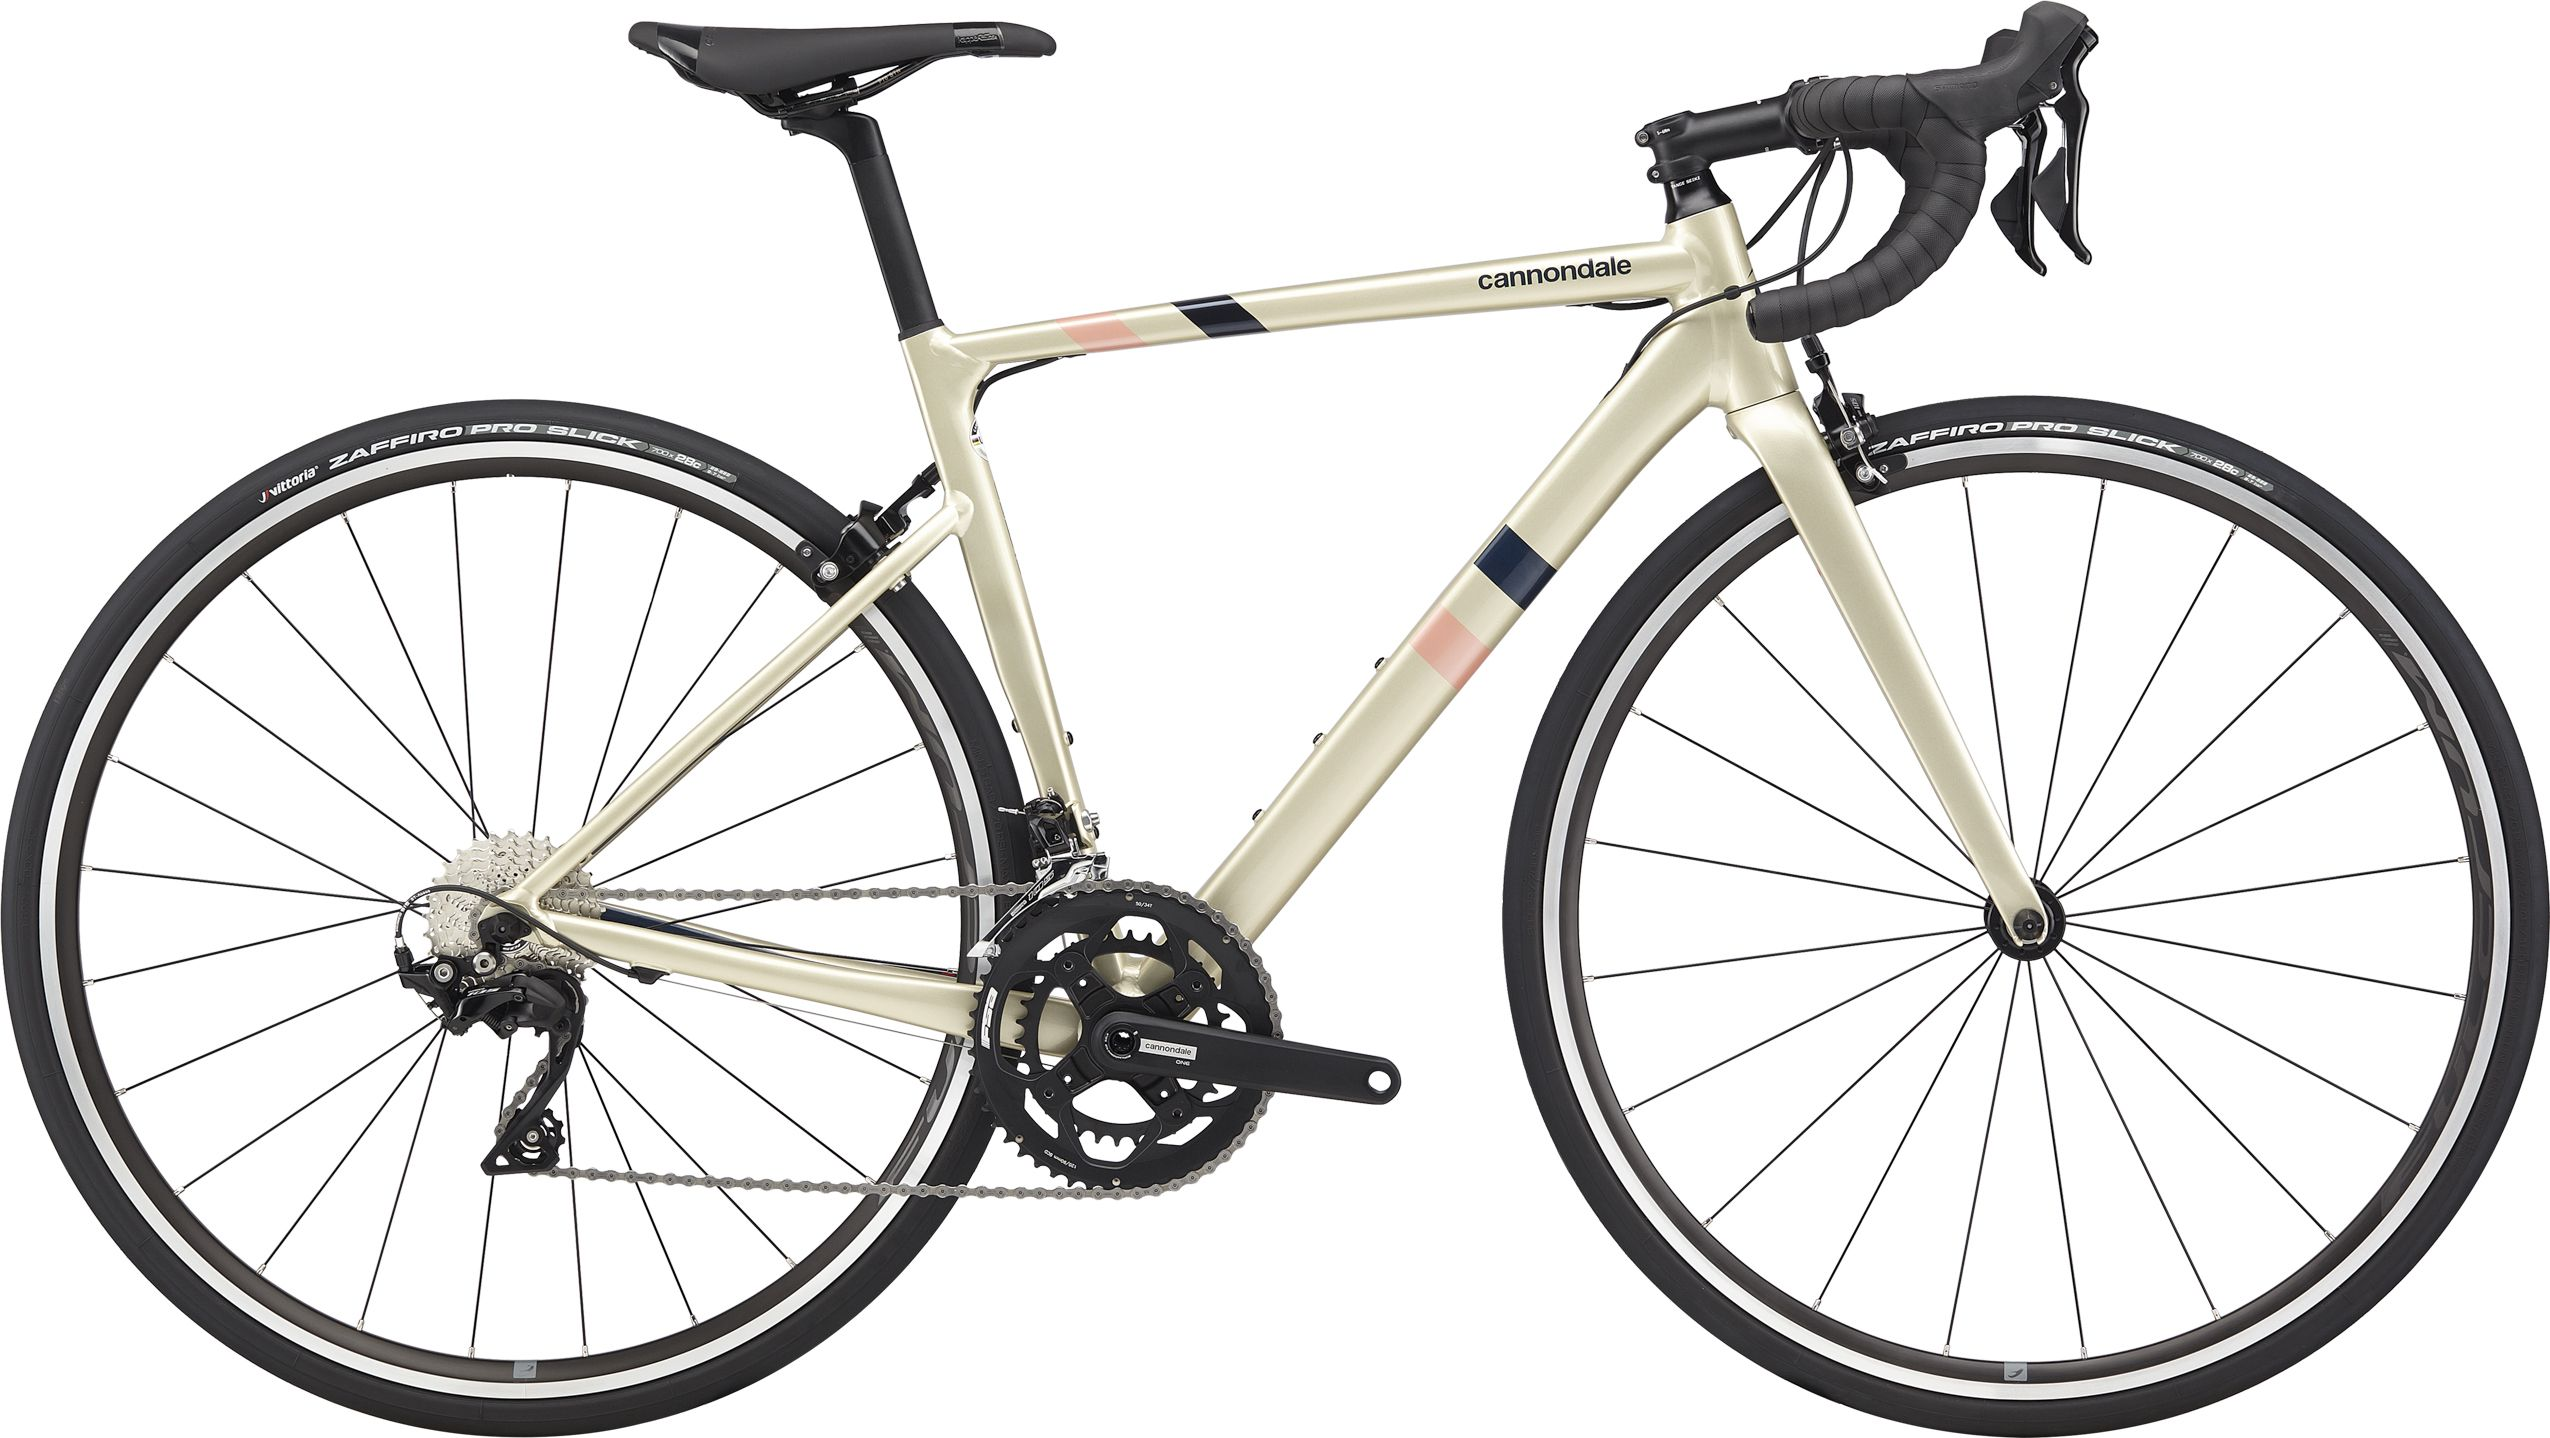 Cannondale Caad13 105 Womens Road Bike 2020 | Road bikes